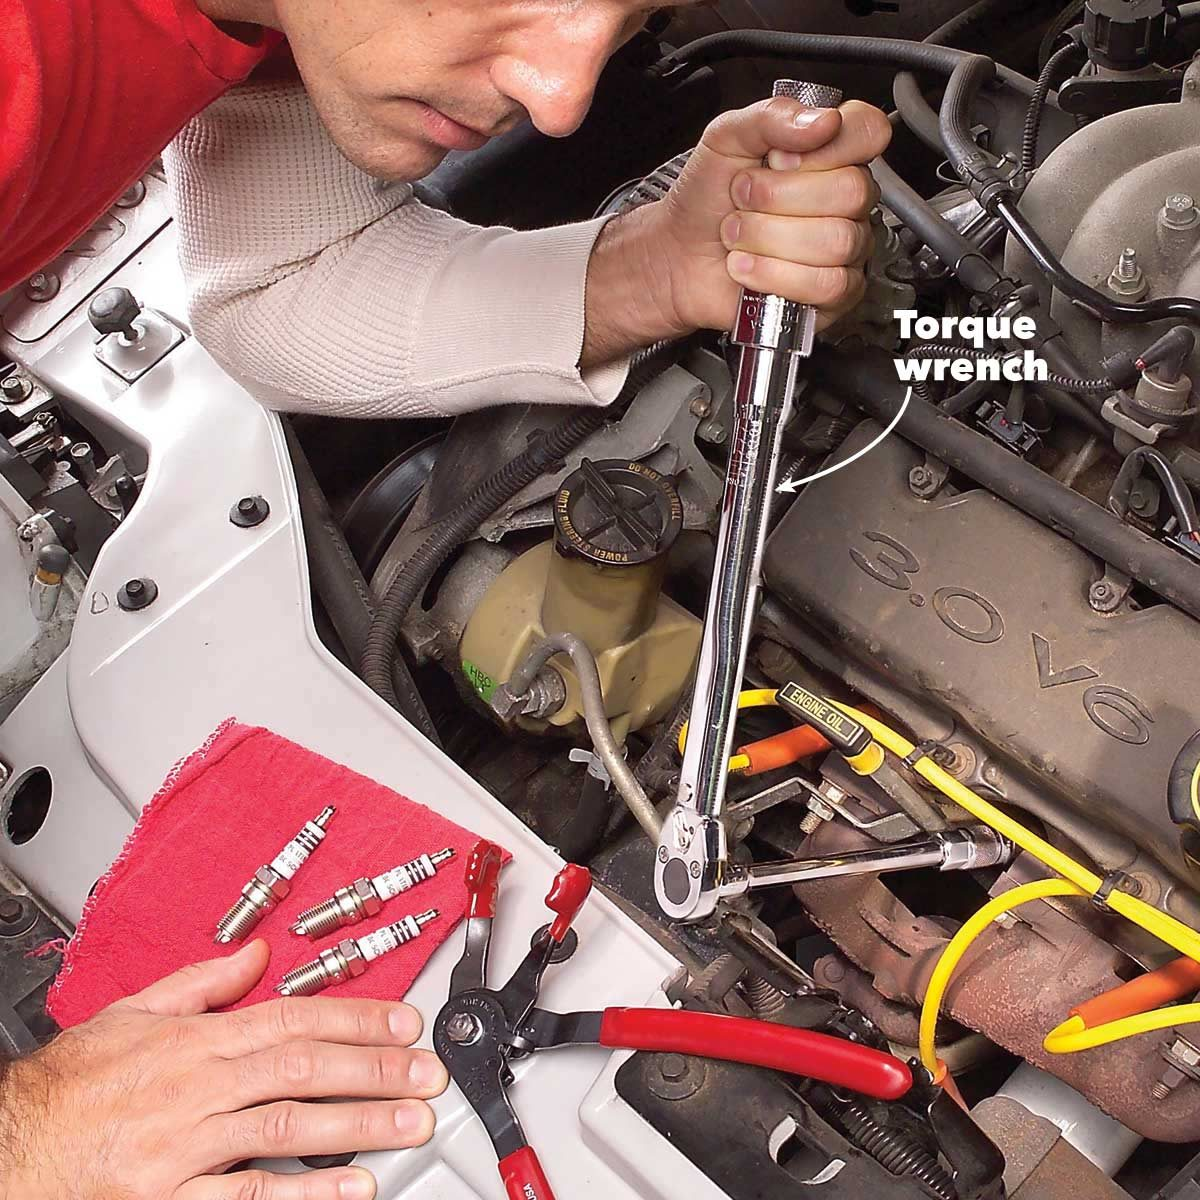 When & How To Change Spark Plugs | The Family Handyman